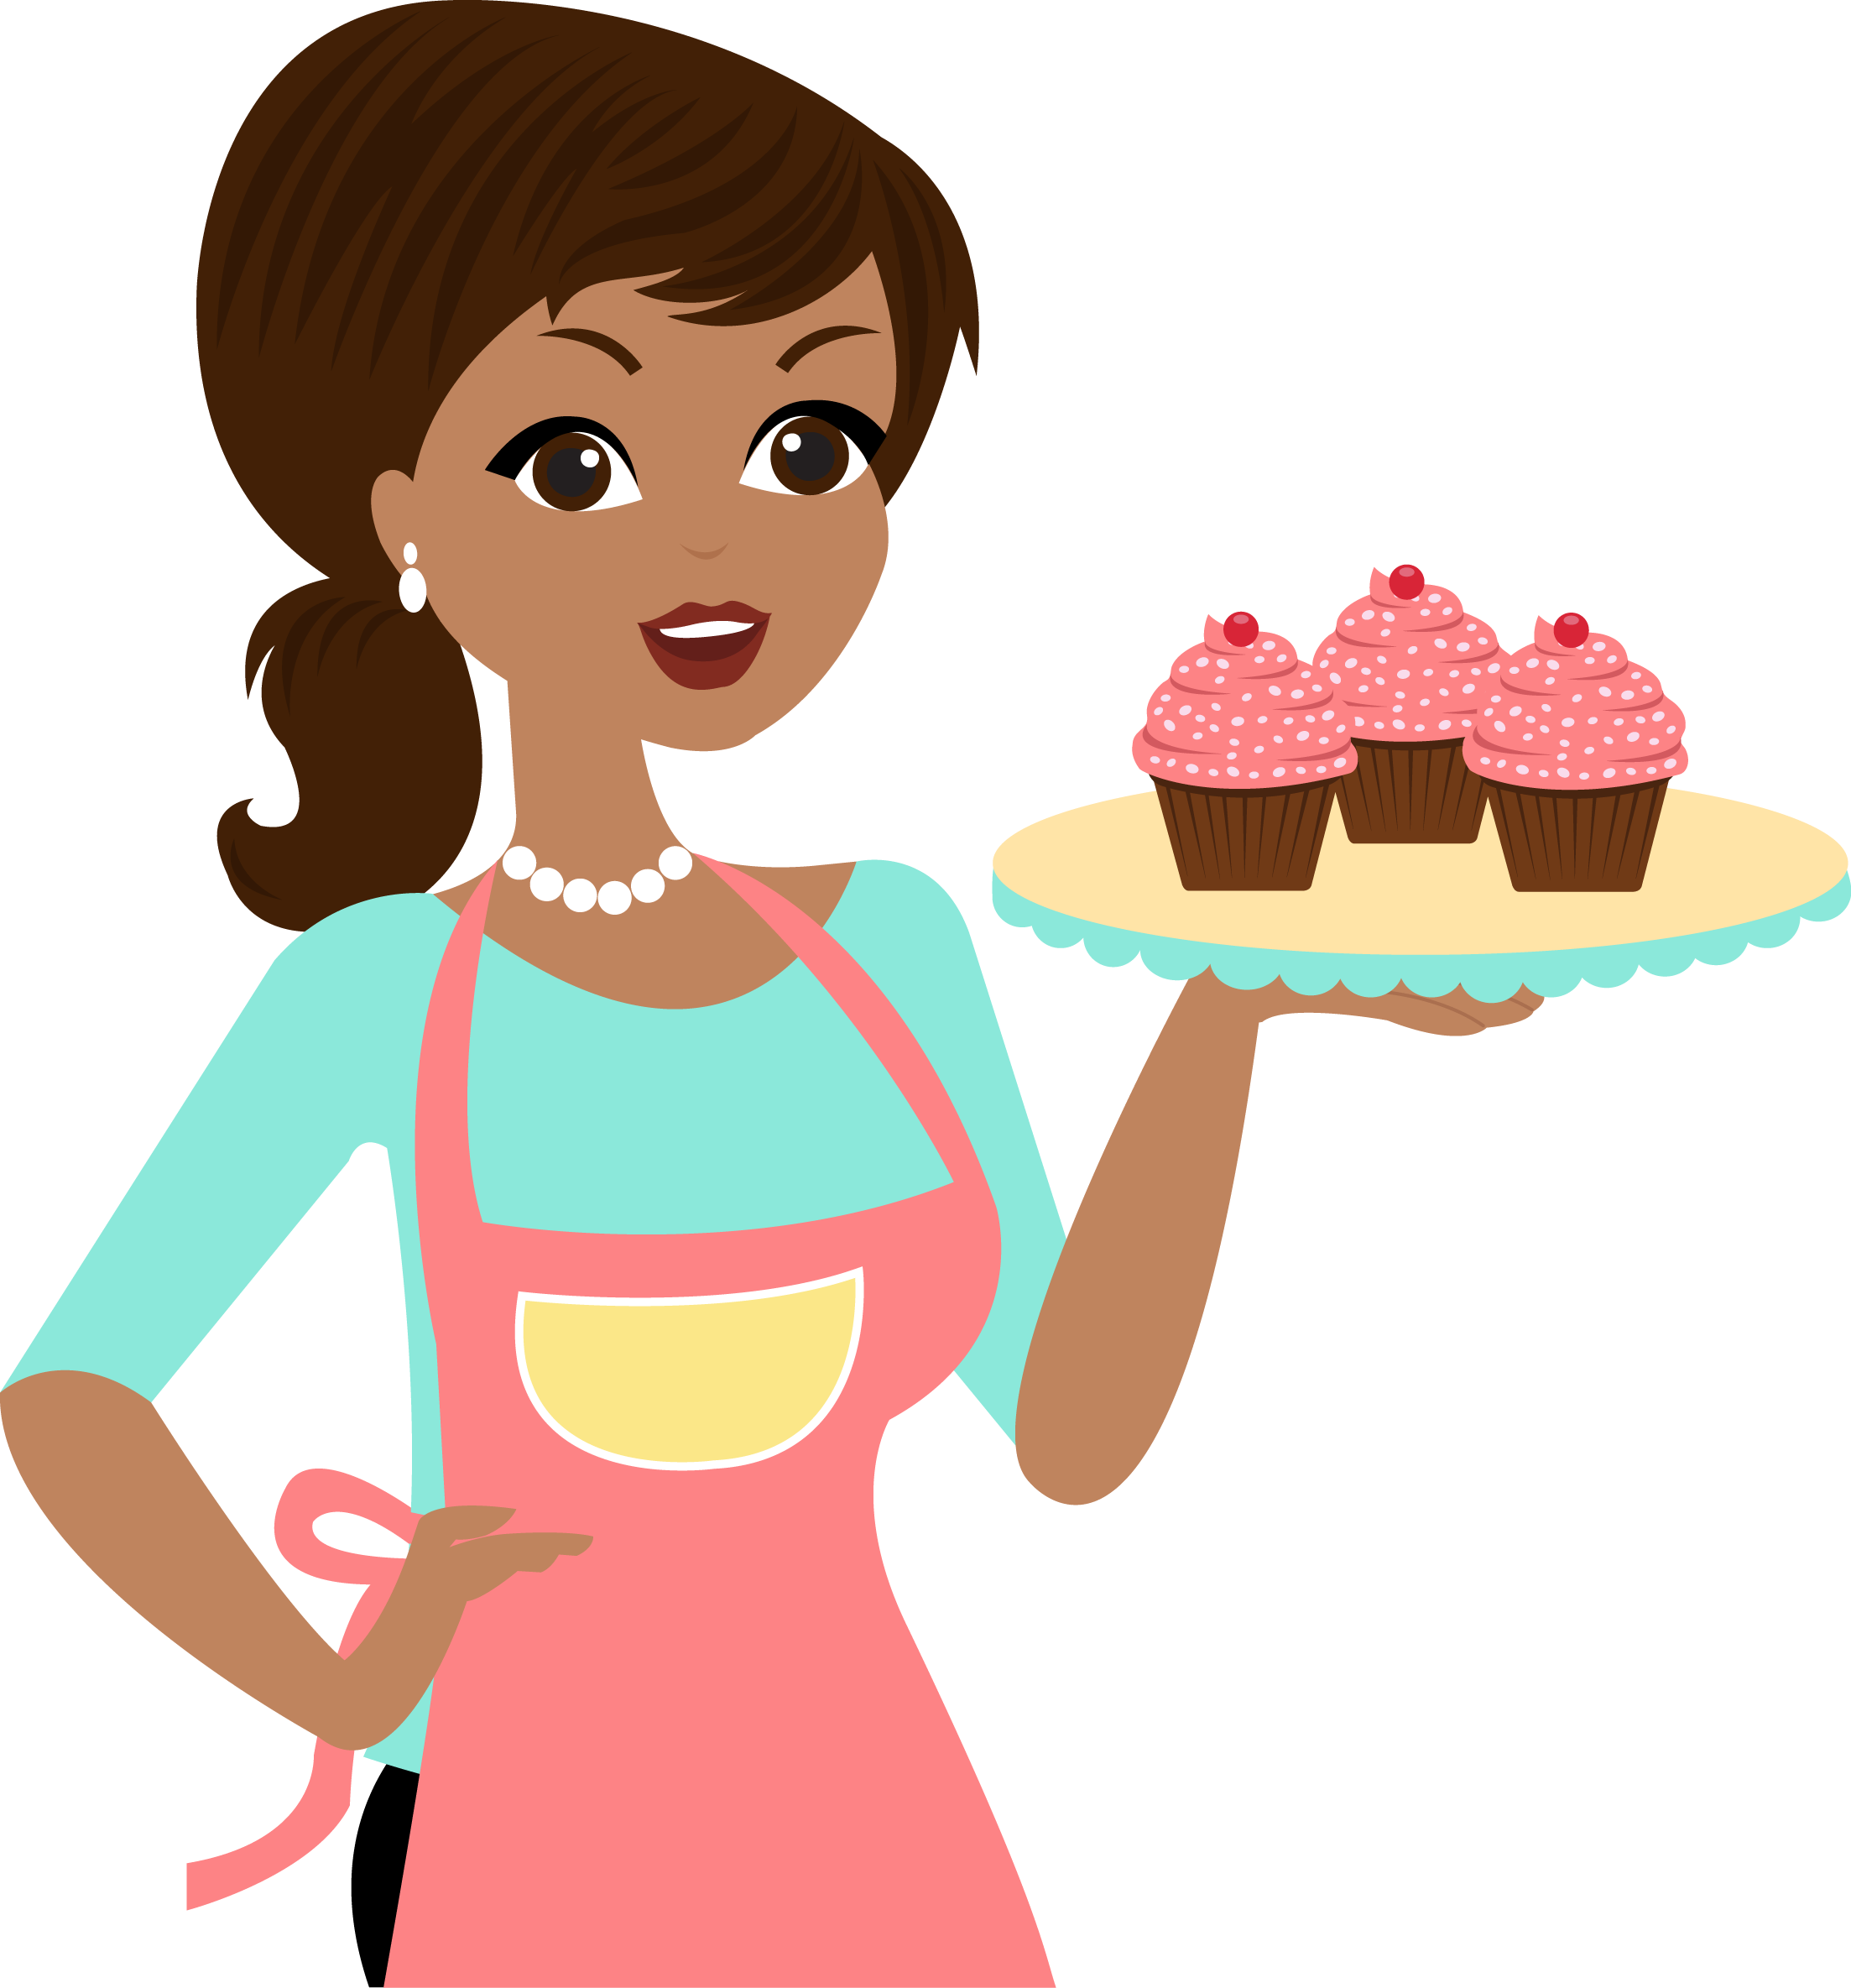 4570book Hd Ultra Bakery Chef Clipart Pngs Pack 4857